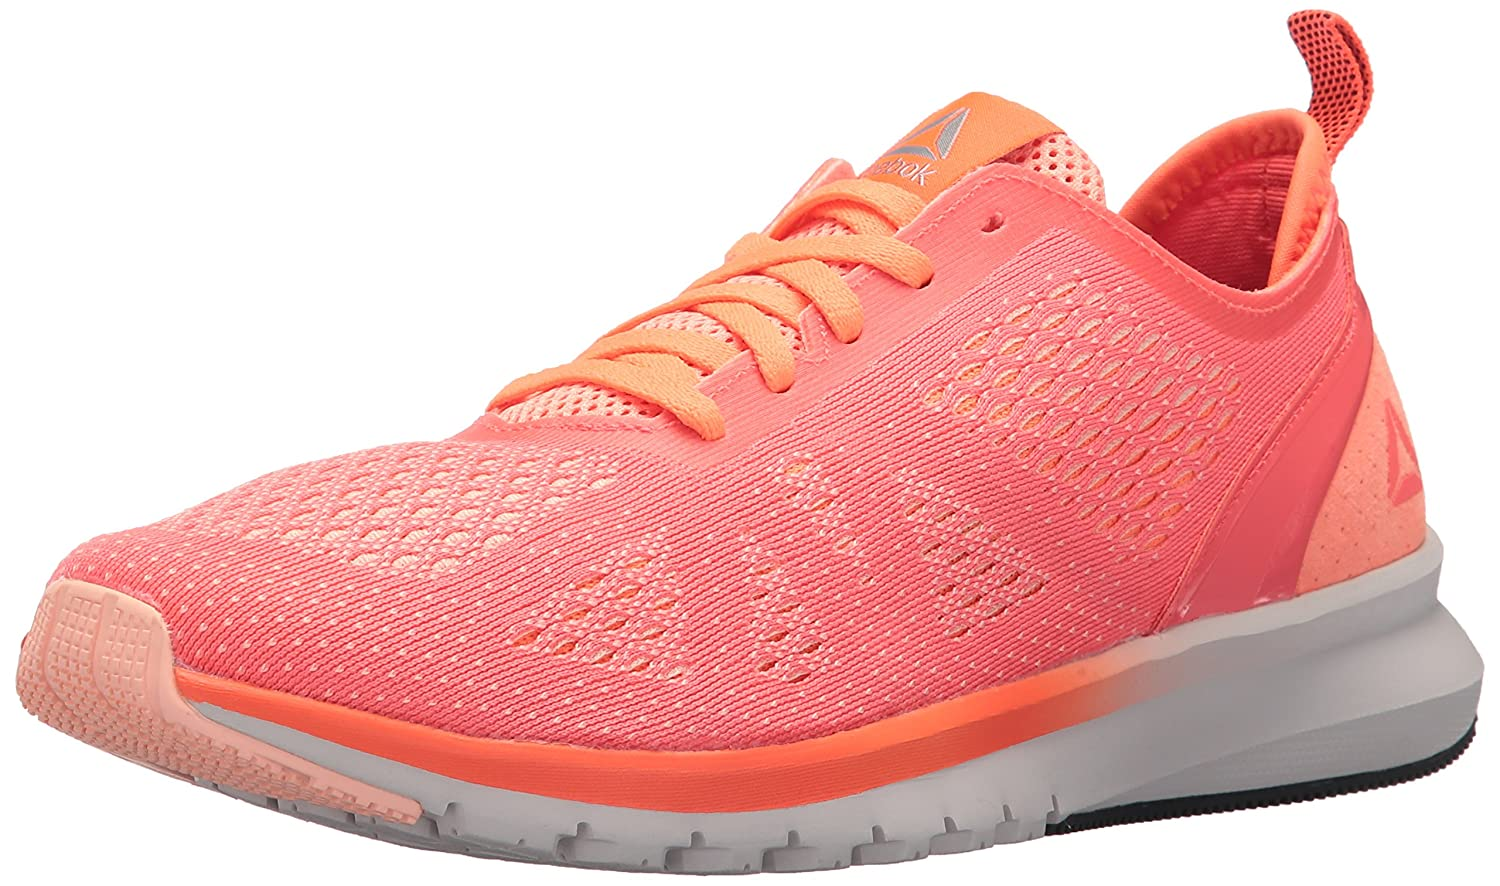 Reebok Women's Print Smooth Clip Ultk Track Shoe B074V1JGRD 8 B(M) US|Guava Punch/Peach Twist/Leather